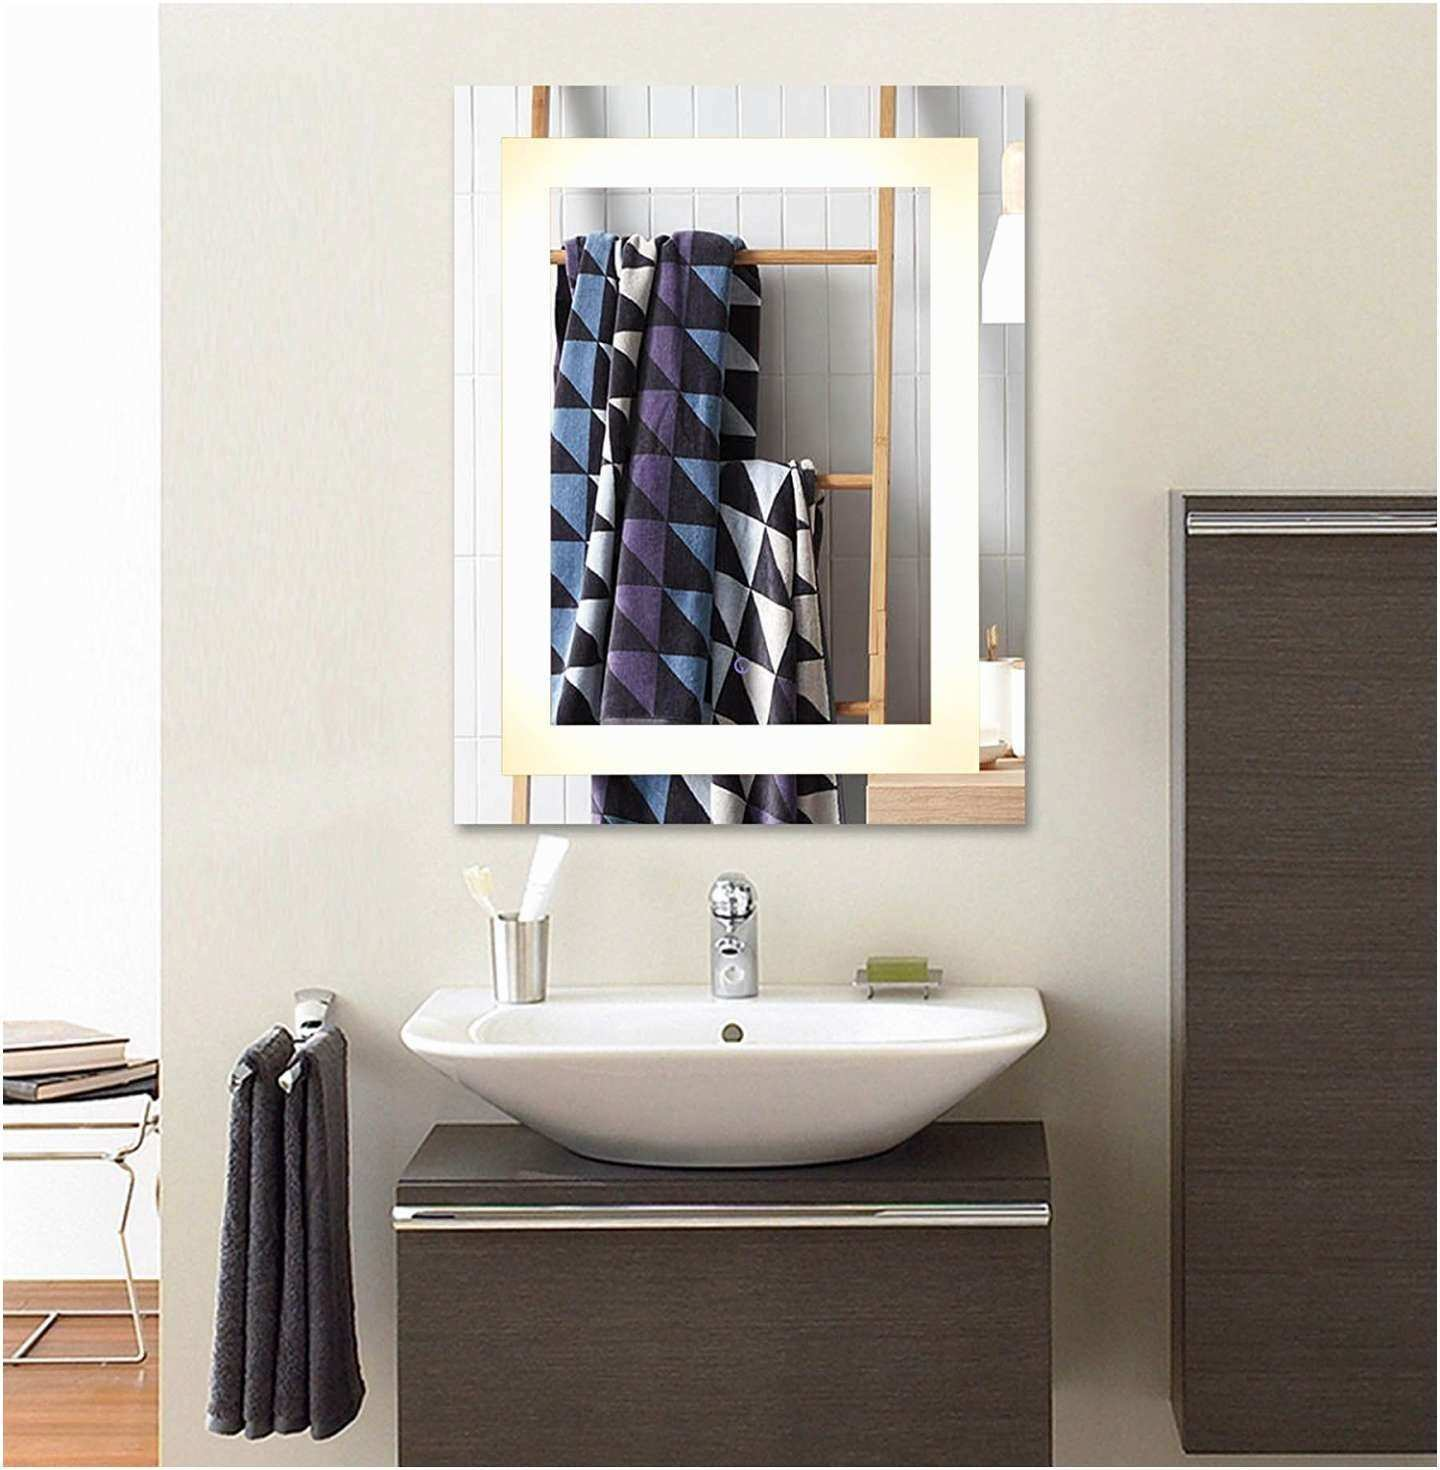 Home Design Bathroom Mirror Shelf Unique Luxury Mode Ikea Meilleur